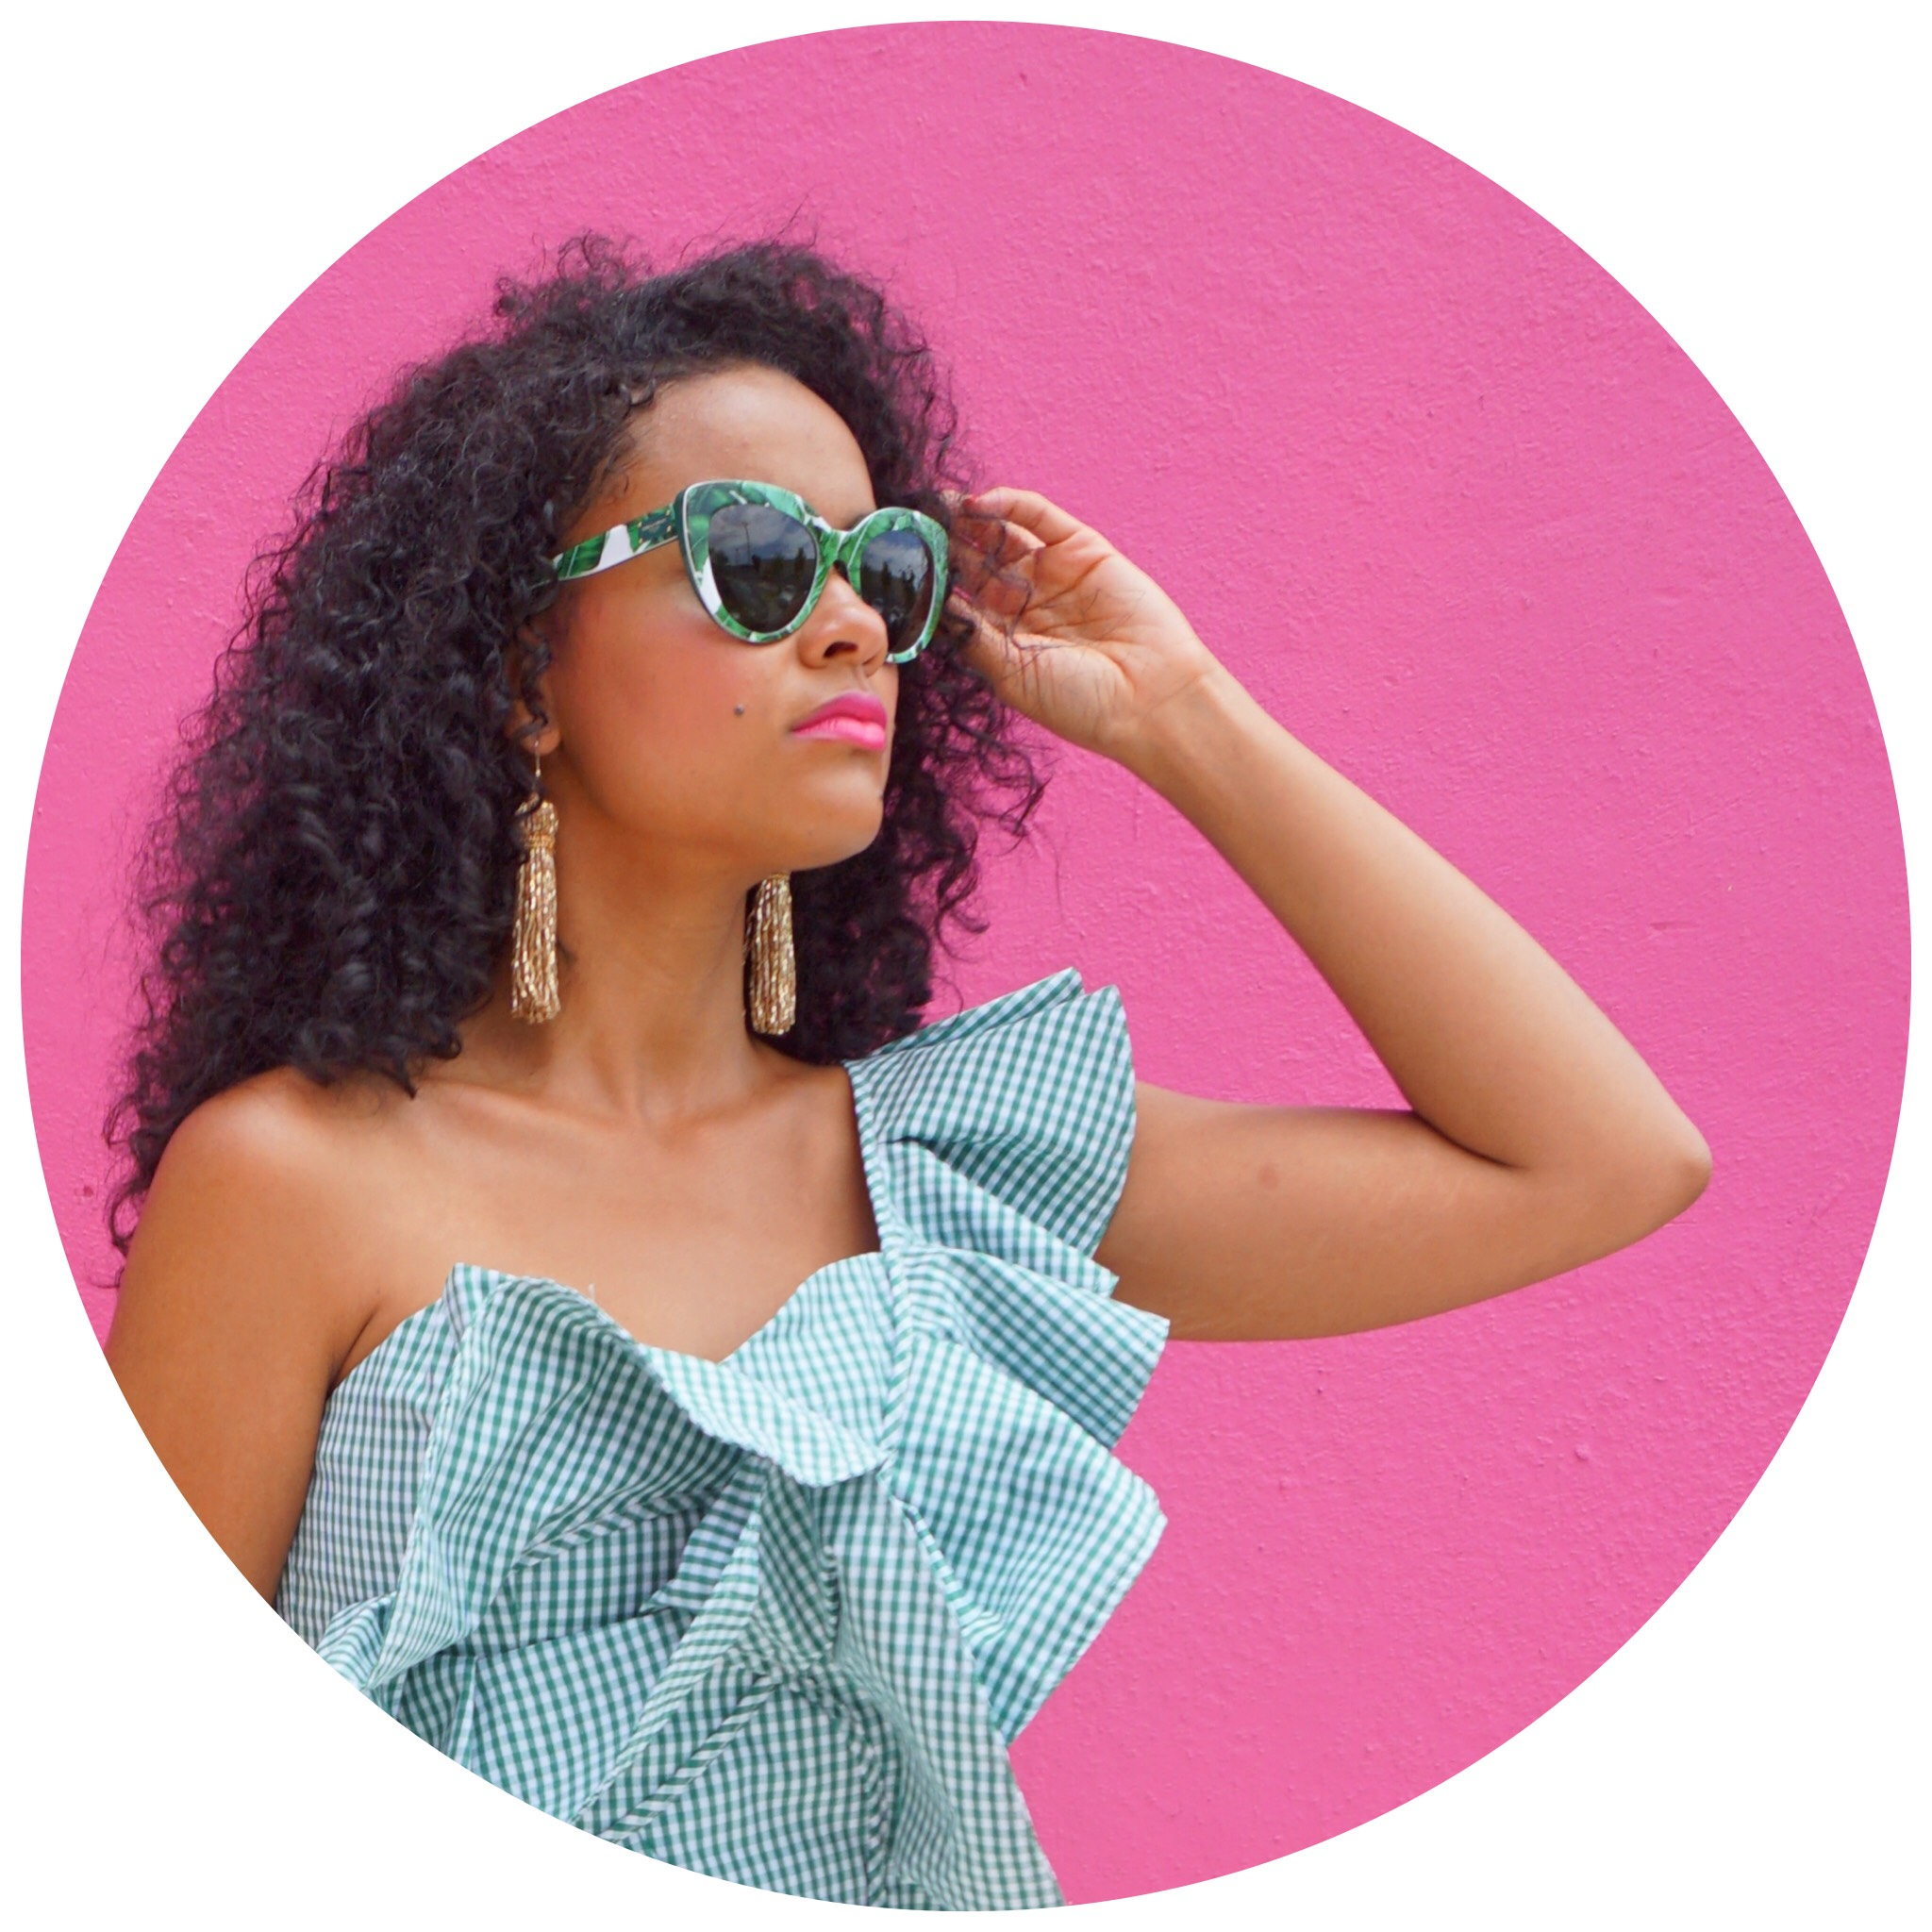 GET TO KNOW ME - Thanks for stopping by! I'm Krystle DeSantos; decorator, style enthusiast, vintage lover and creative blogger behind my site. This is where I document my journey of pursuing my creative endeavors while making this site a decor, style, vintage and DIY resource for you.Read More...